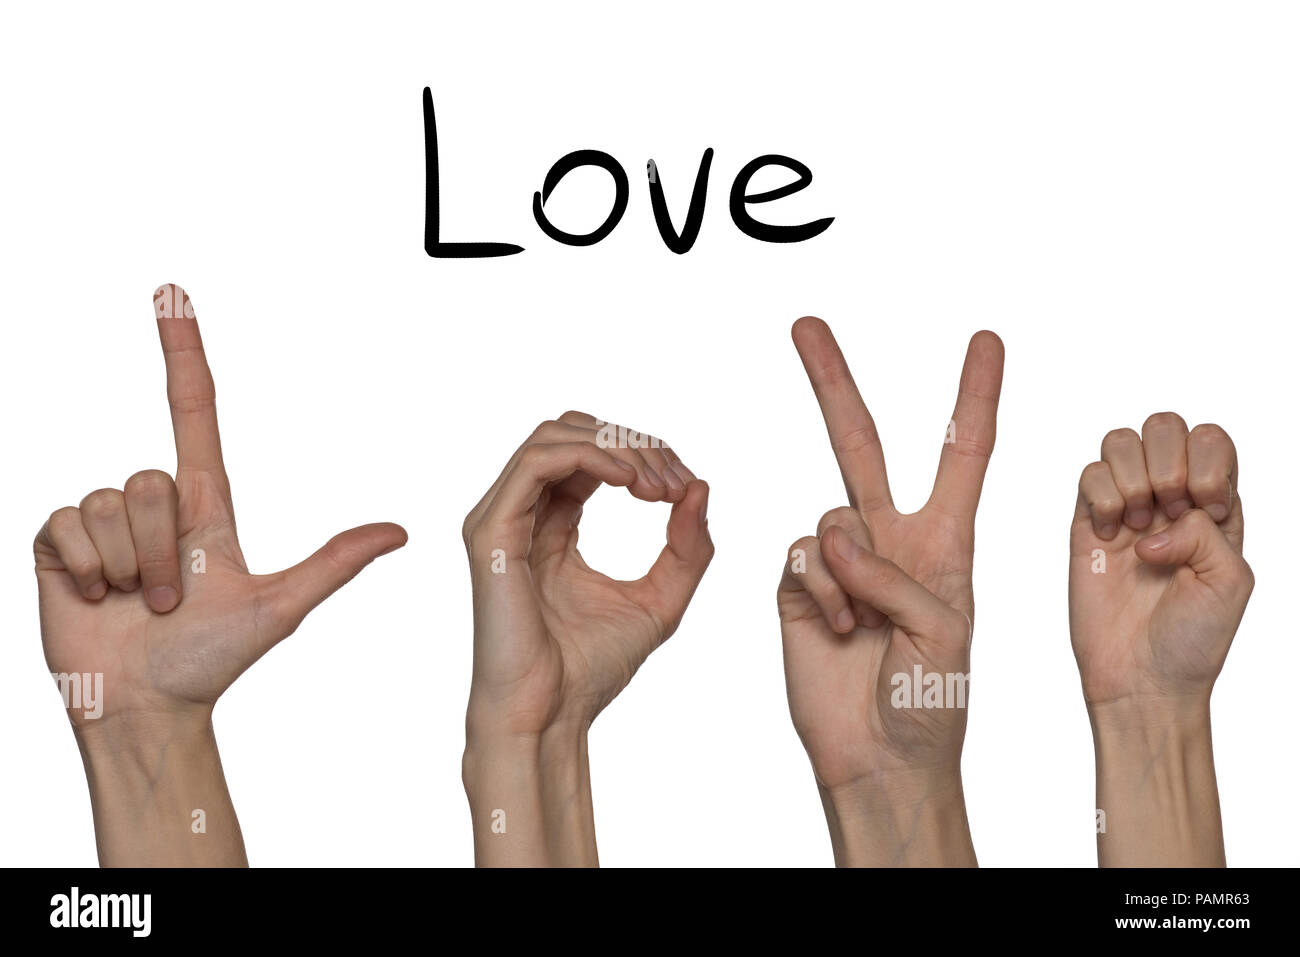 A word of love shown by hands in English on an alphabet for the deaf mute on a white background - Stock Image